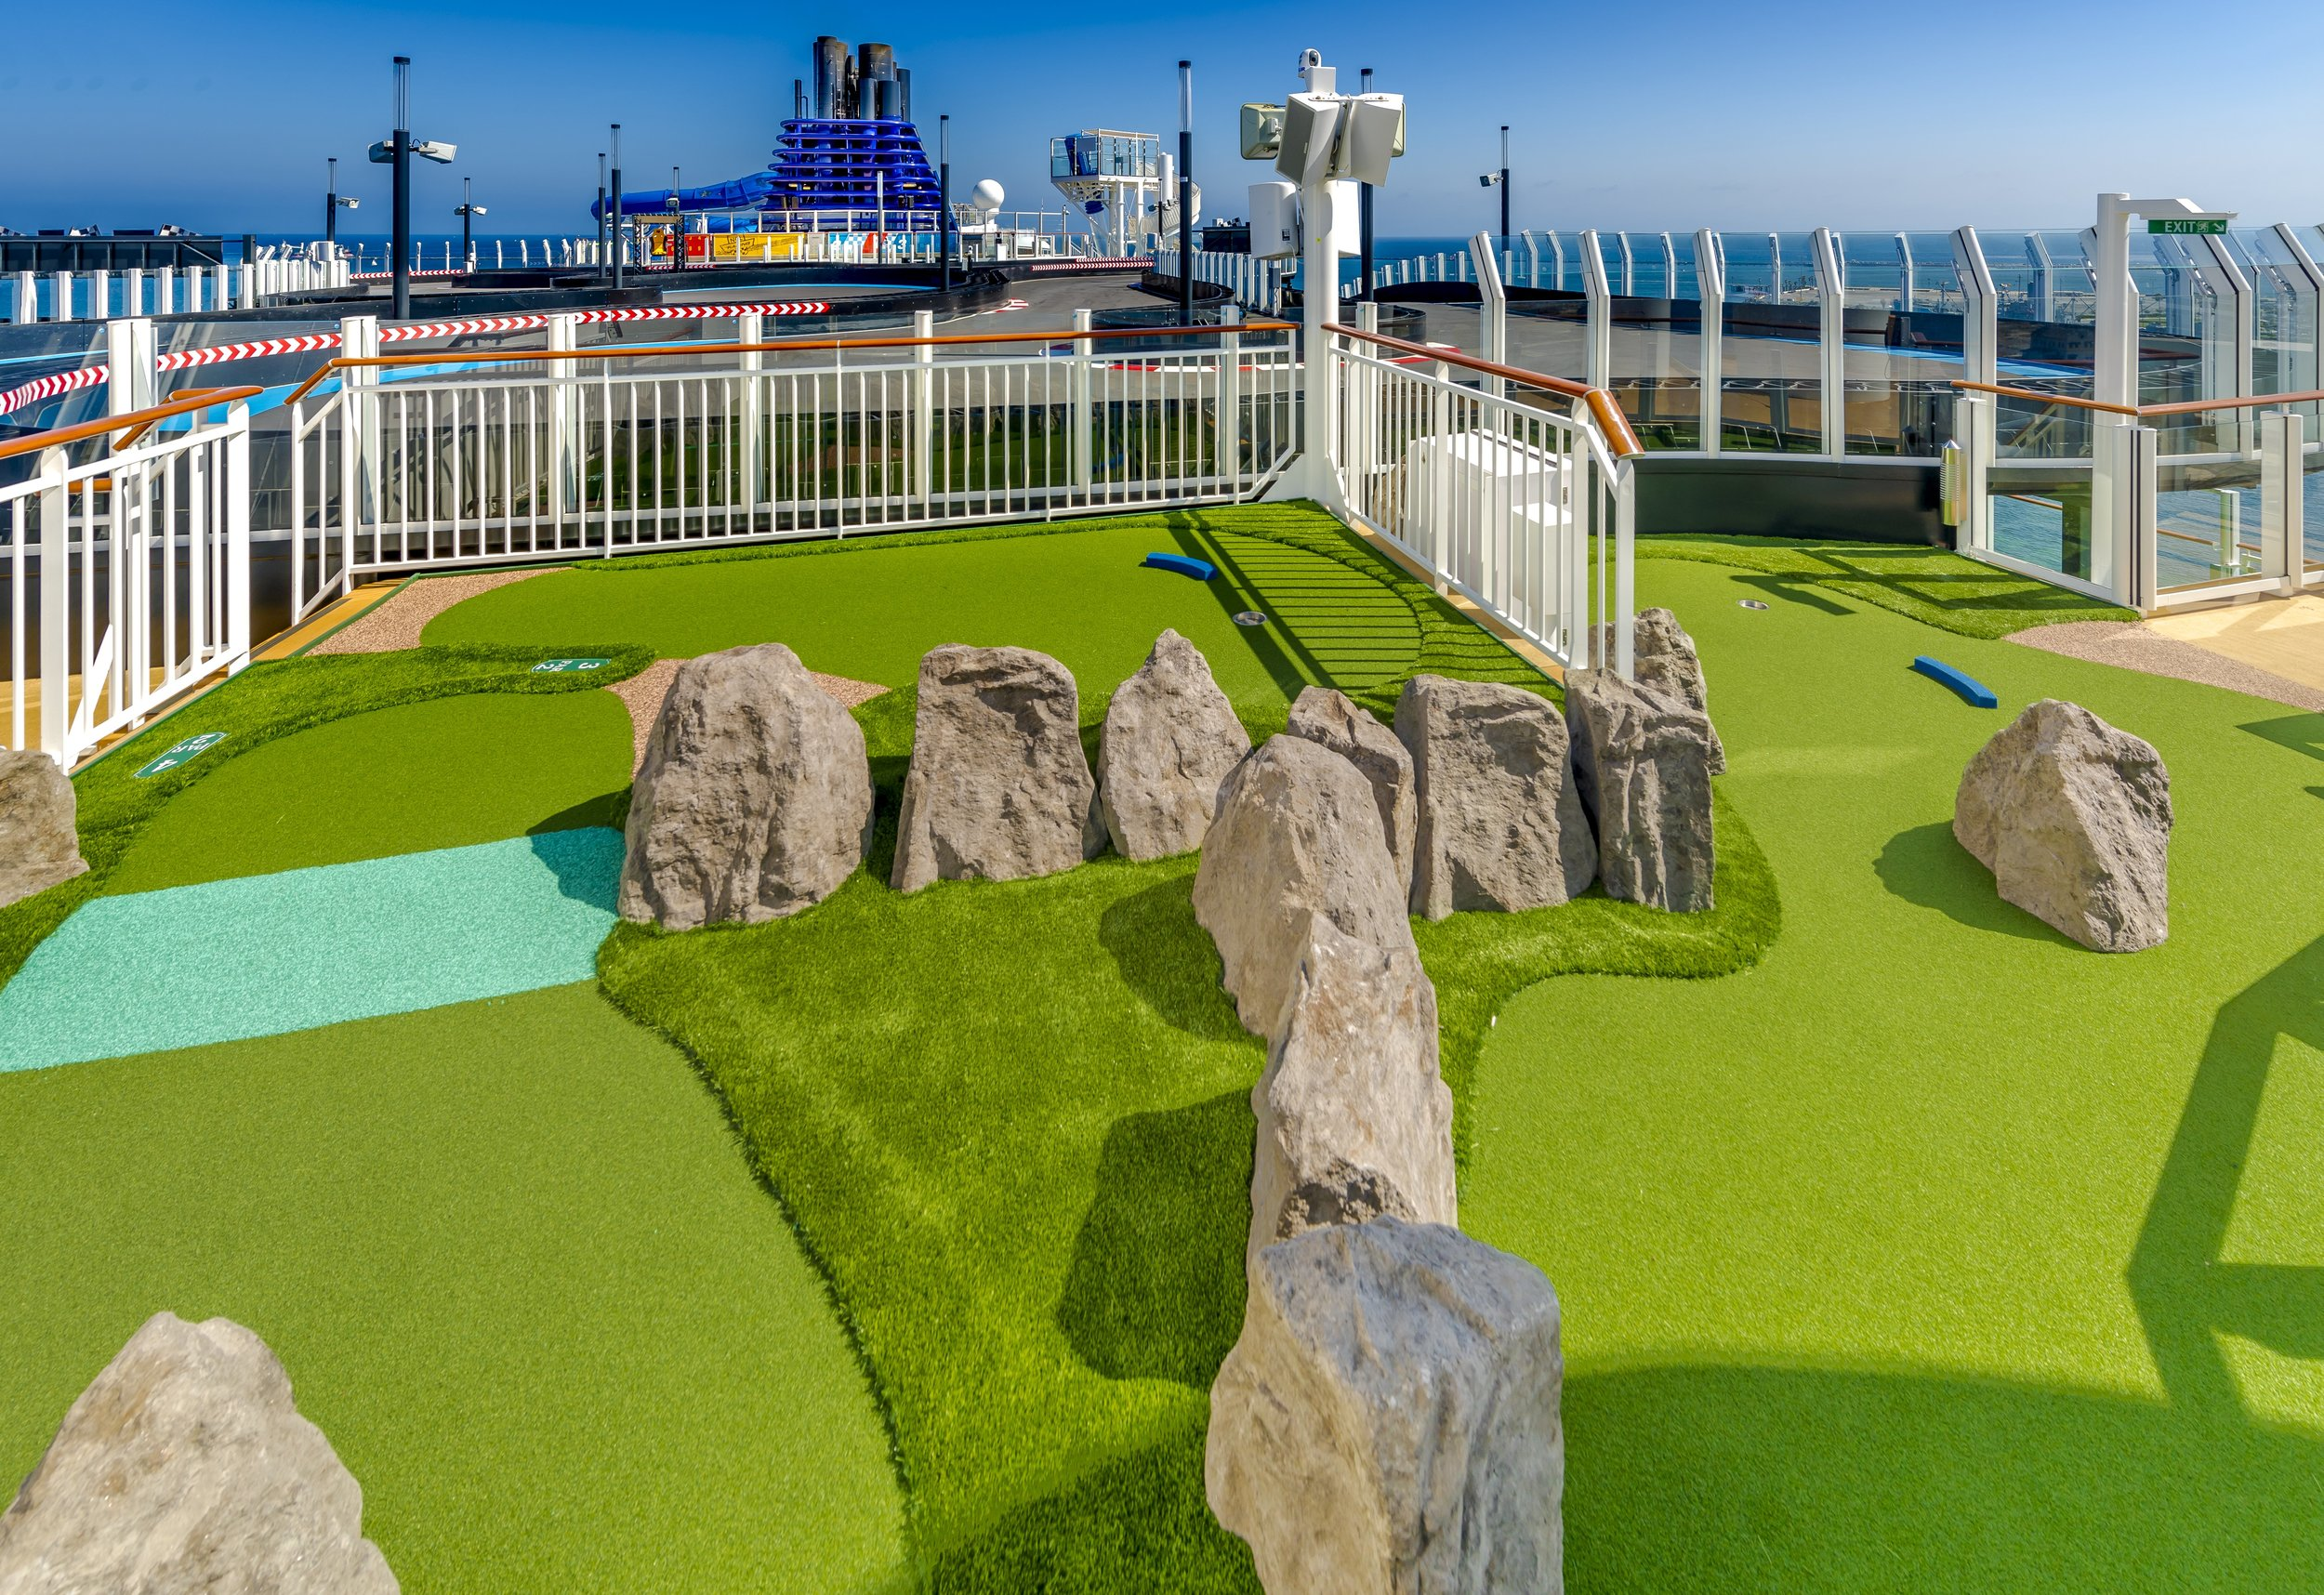 ncl_Bliss_Mini_Golf_1.jpeg